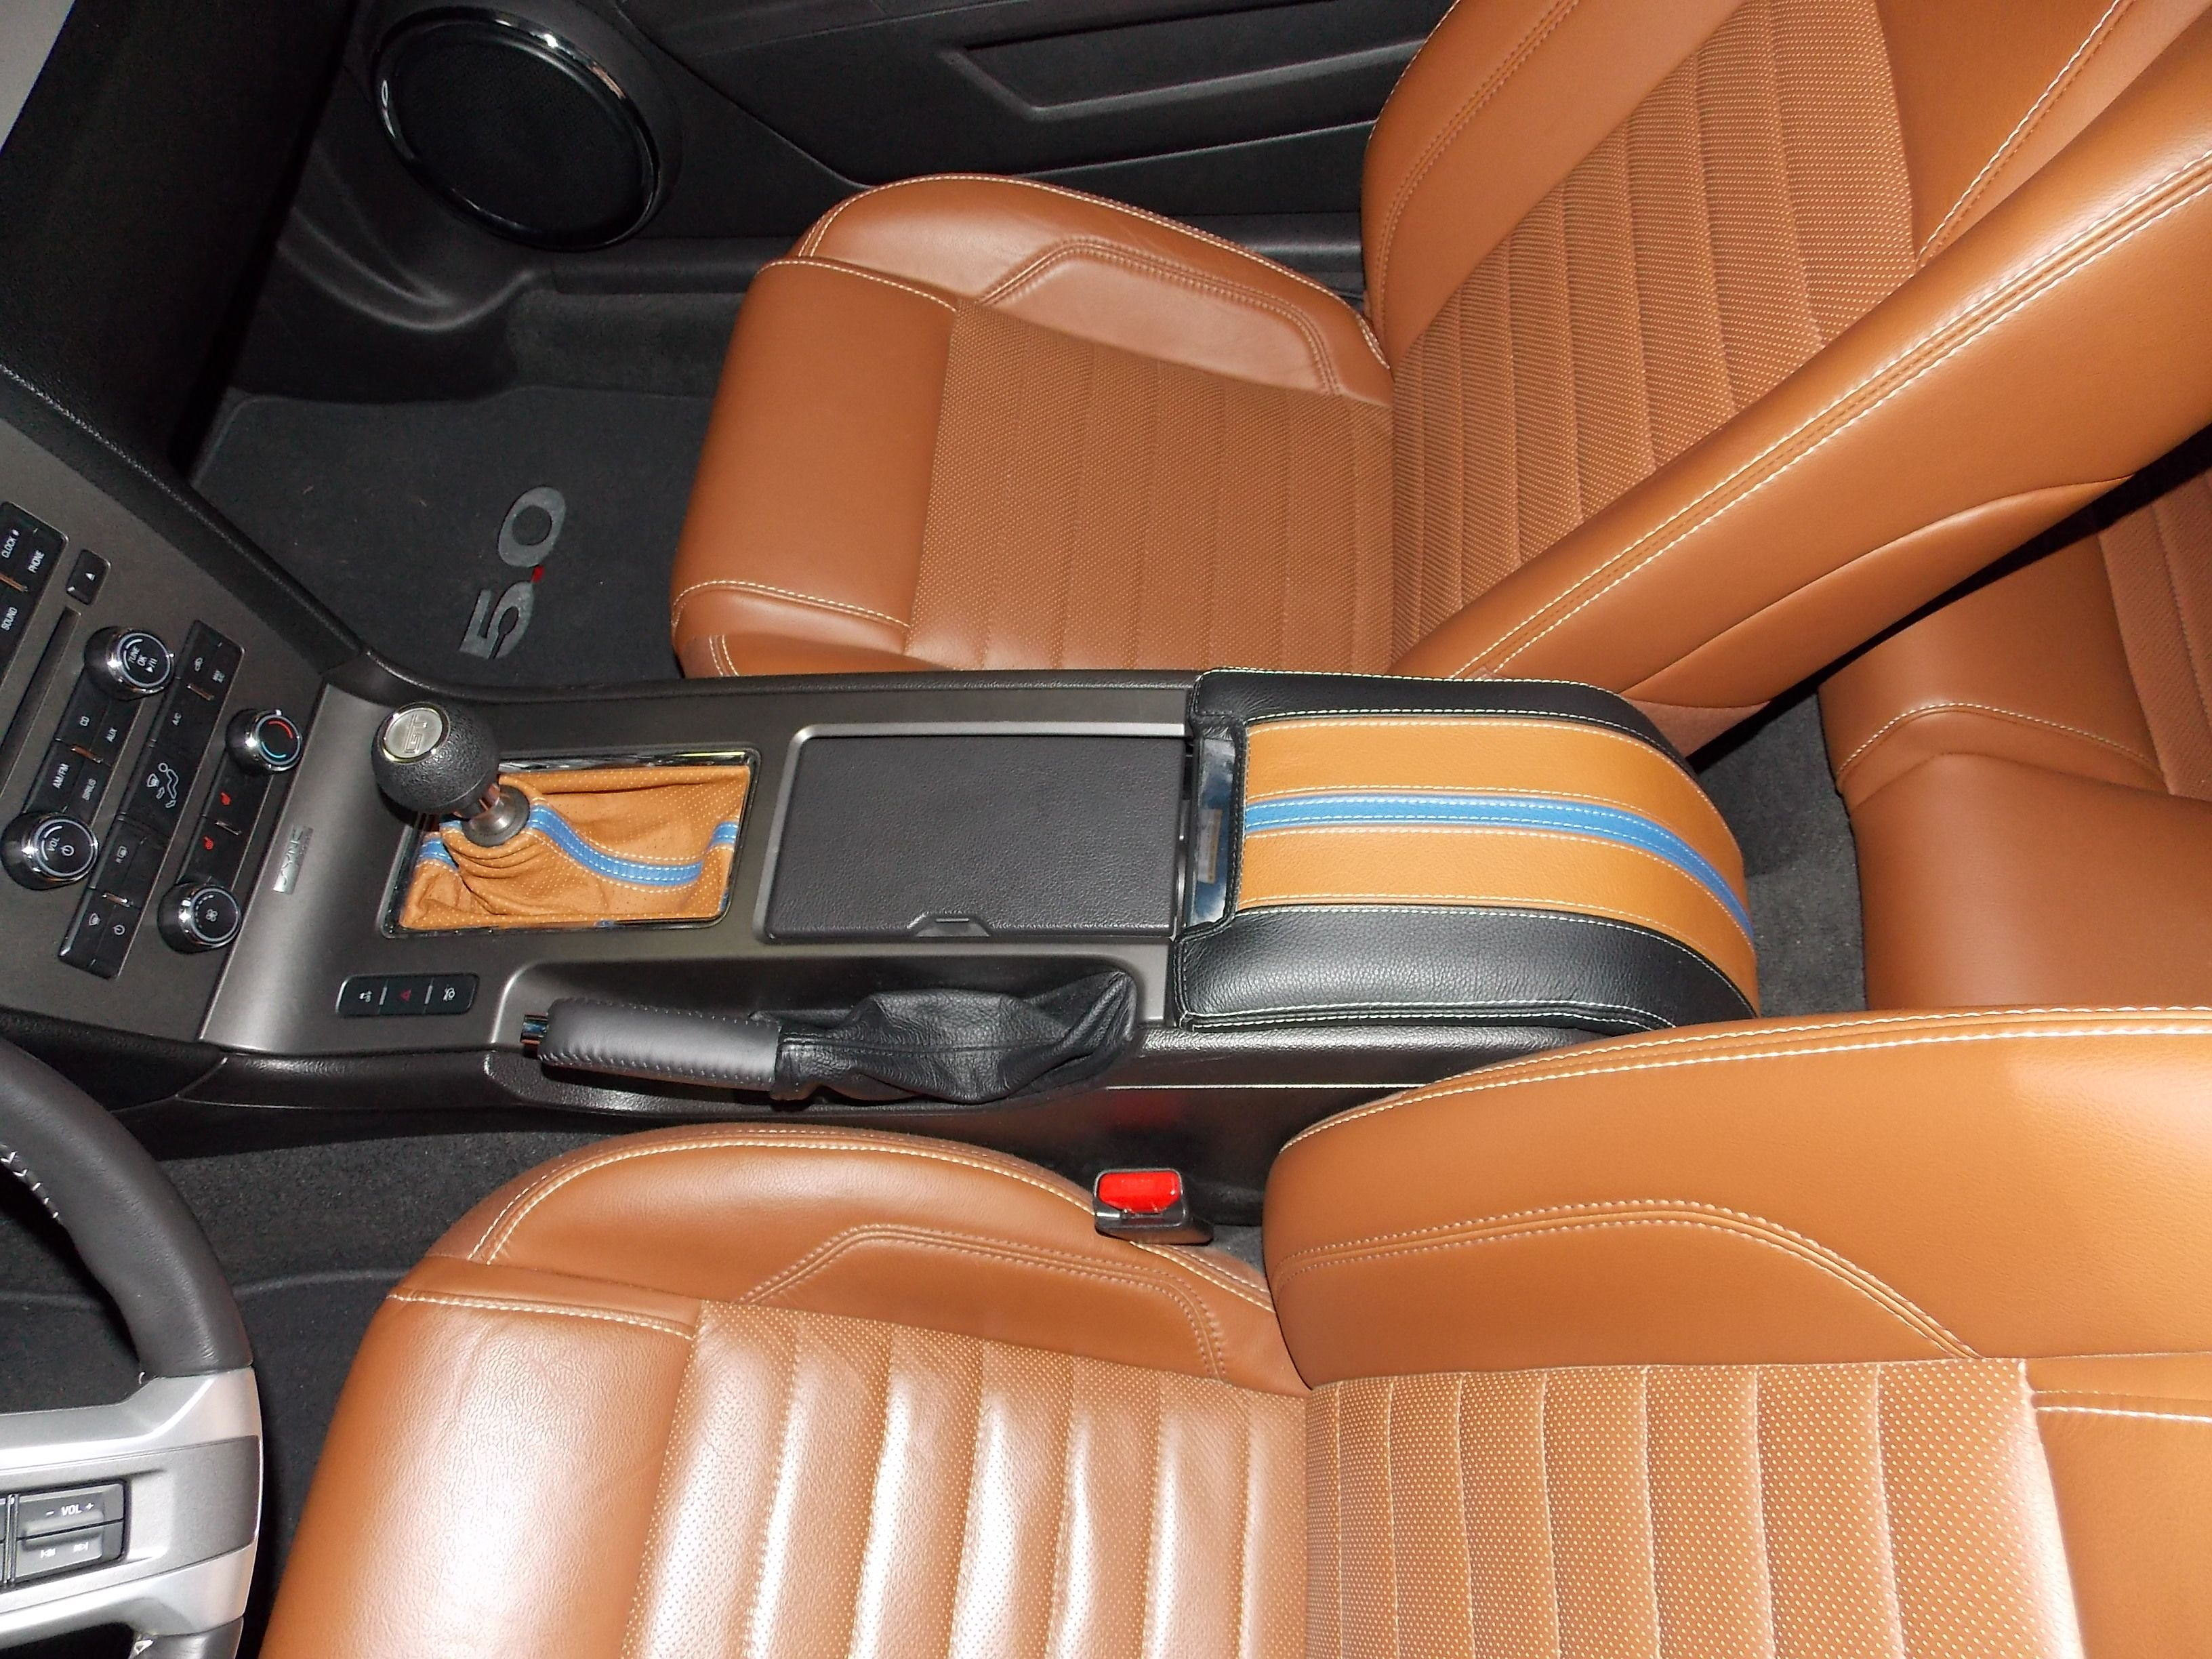 Redlinegoods shift boot console cover and black parking brake boot to match ford mustang gt